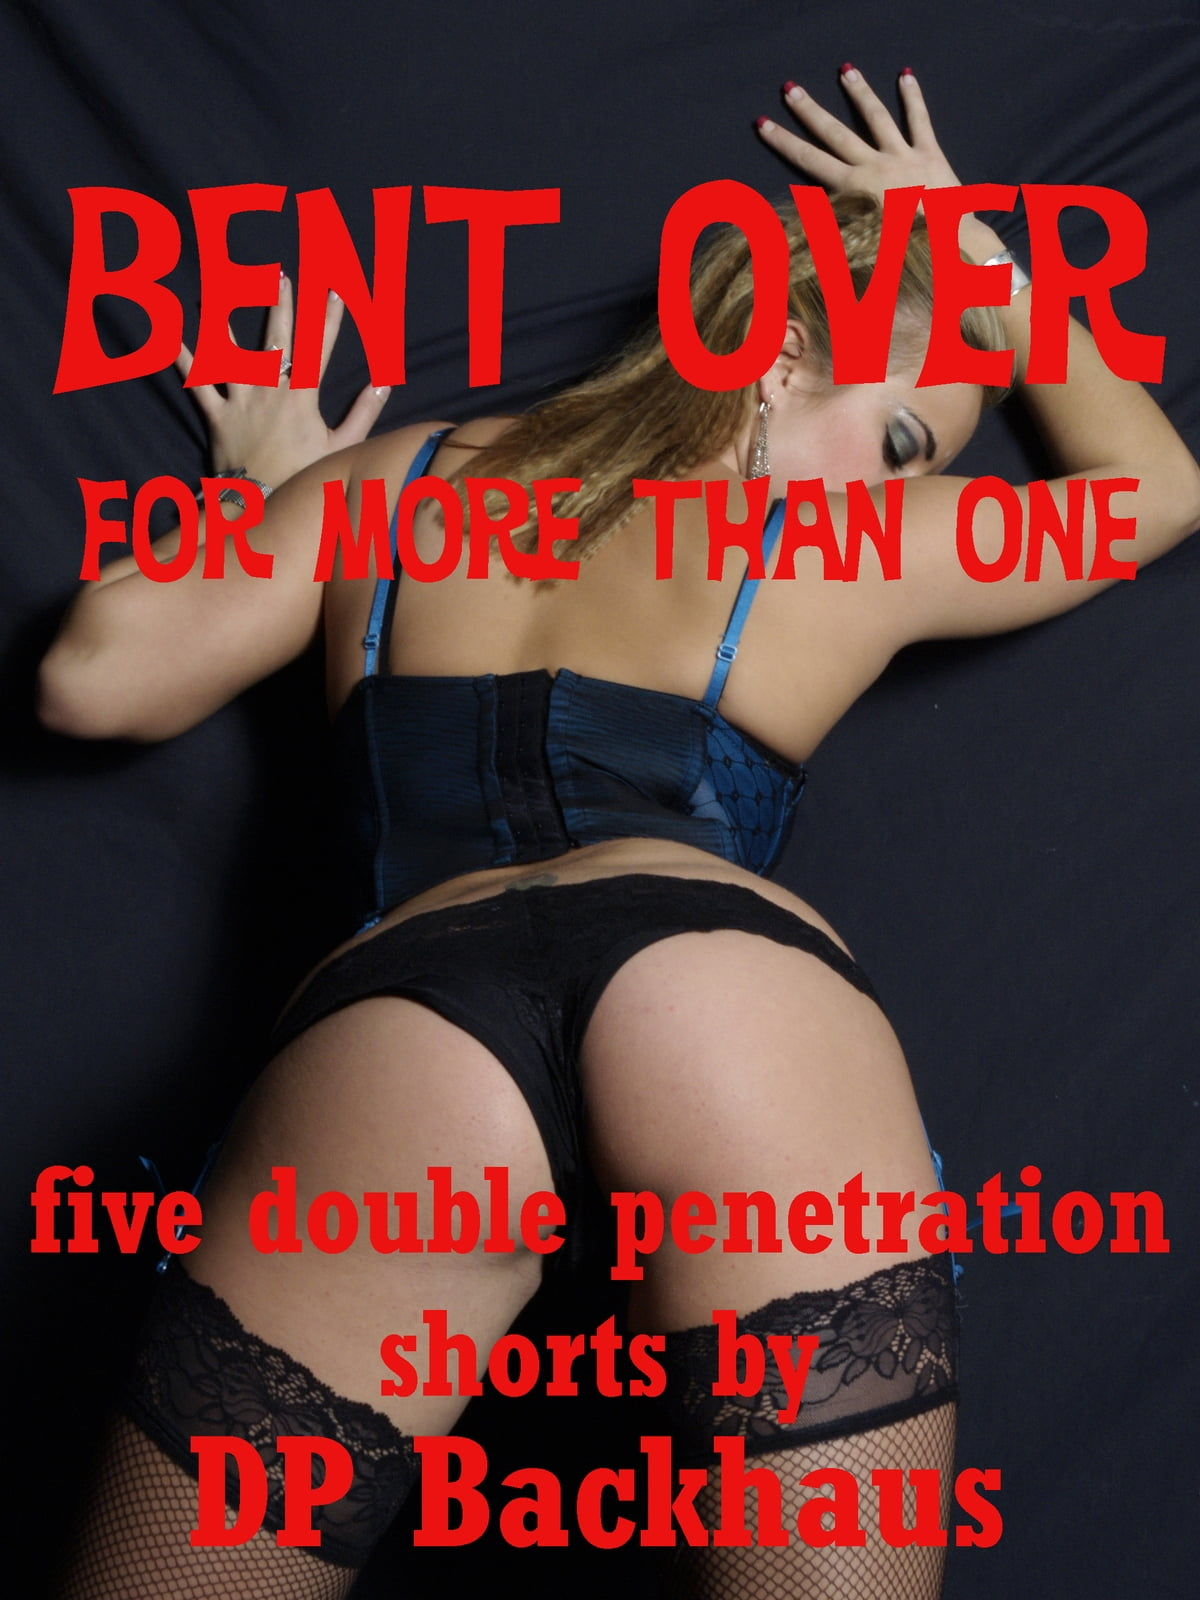 Fiction stories of anal penetration